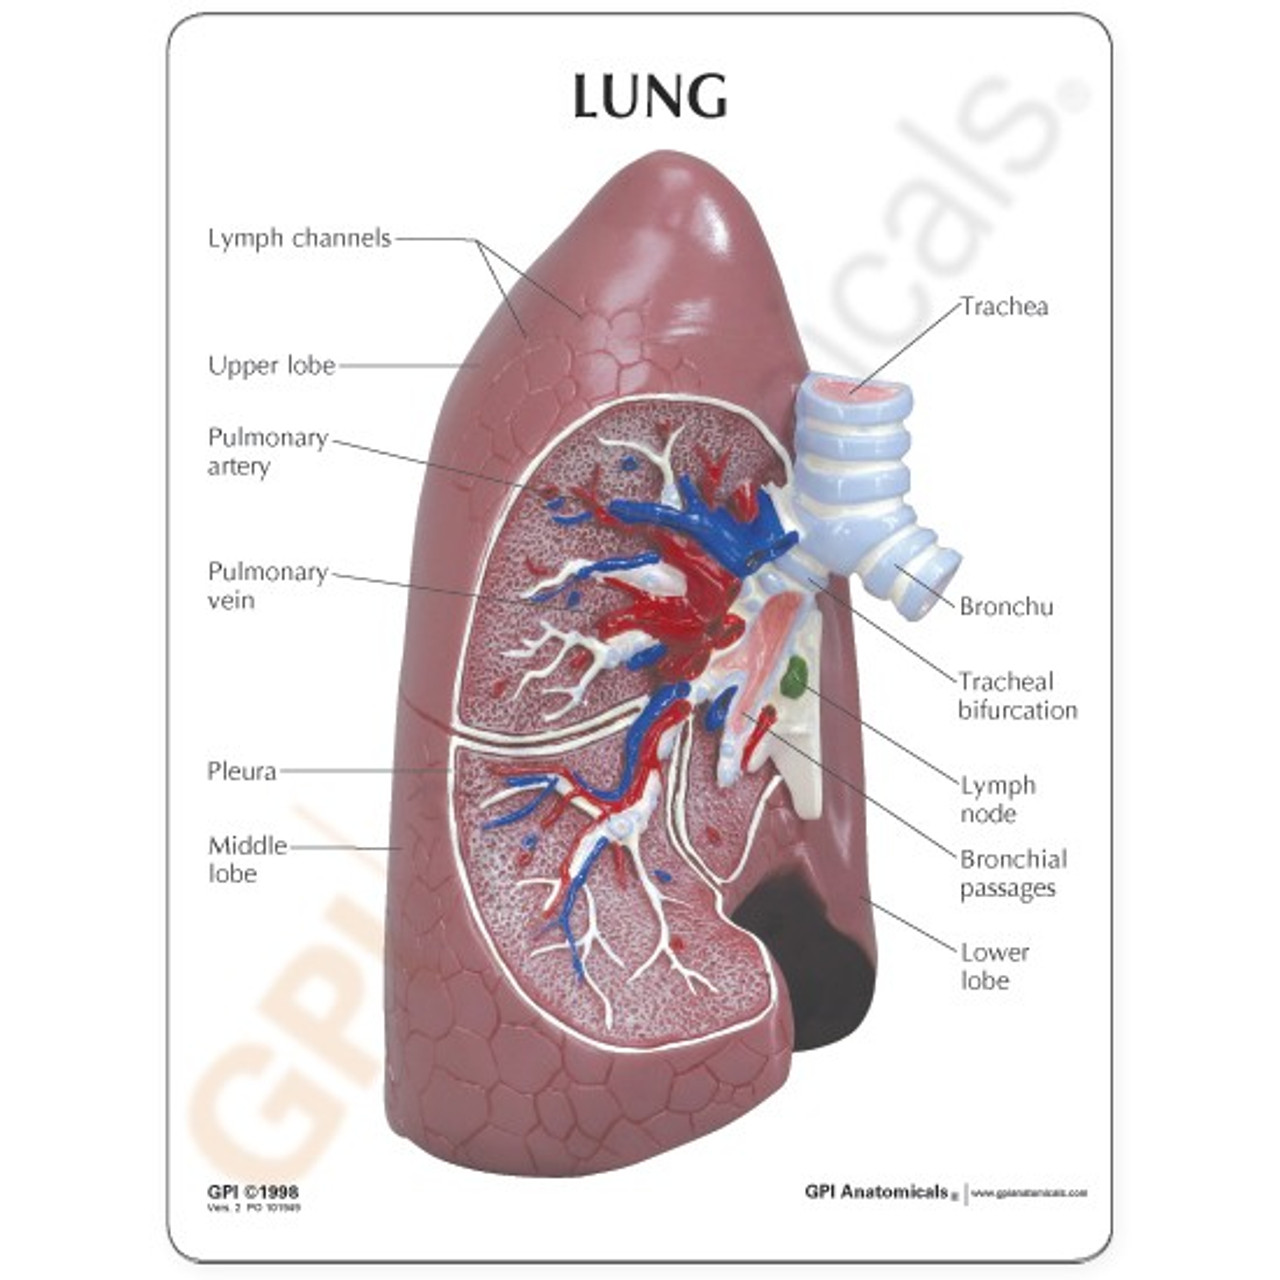 Lung Model Description Card